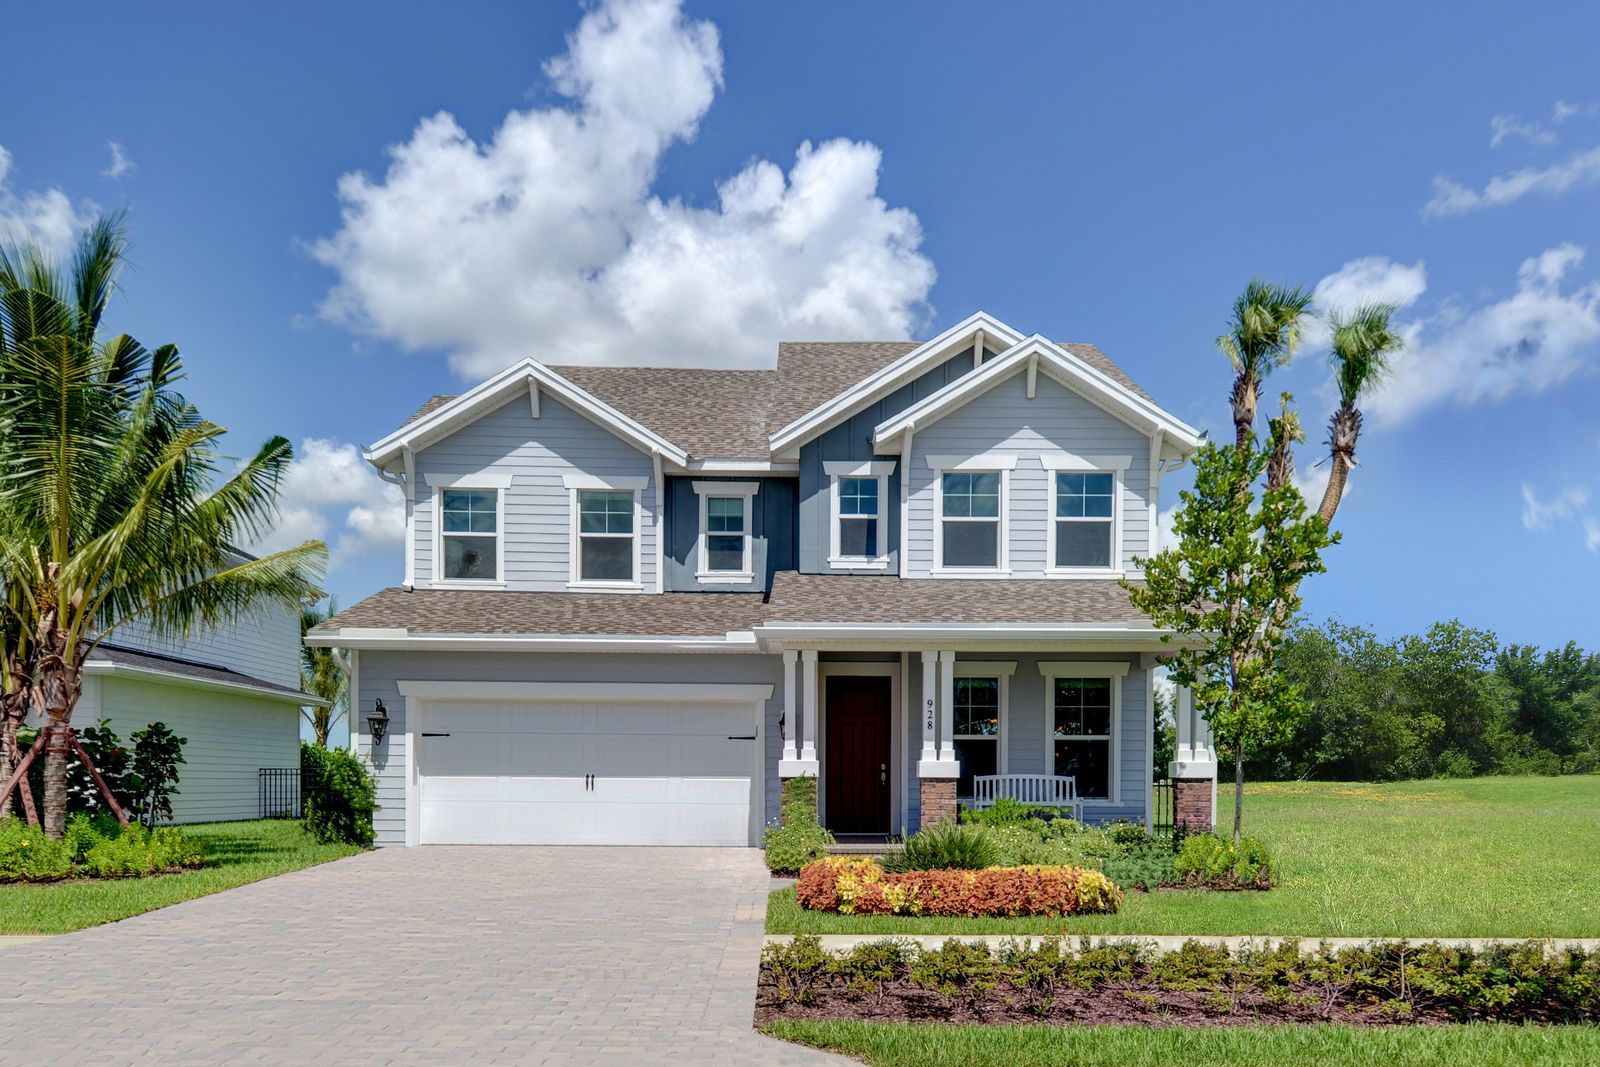 Single Family for Sale at Banyan Bay - Corin 4872 Sw Millbrook Lane Stuart, Florida 34997 United States